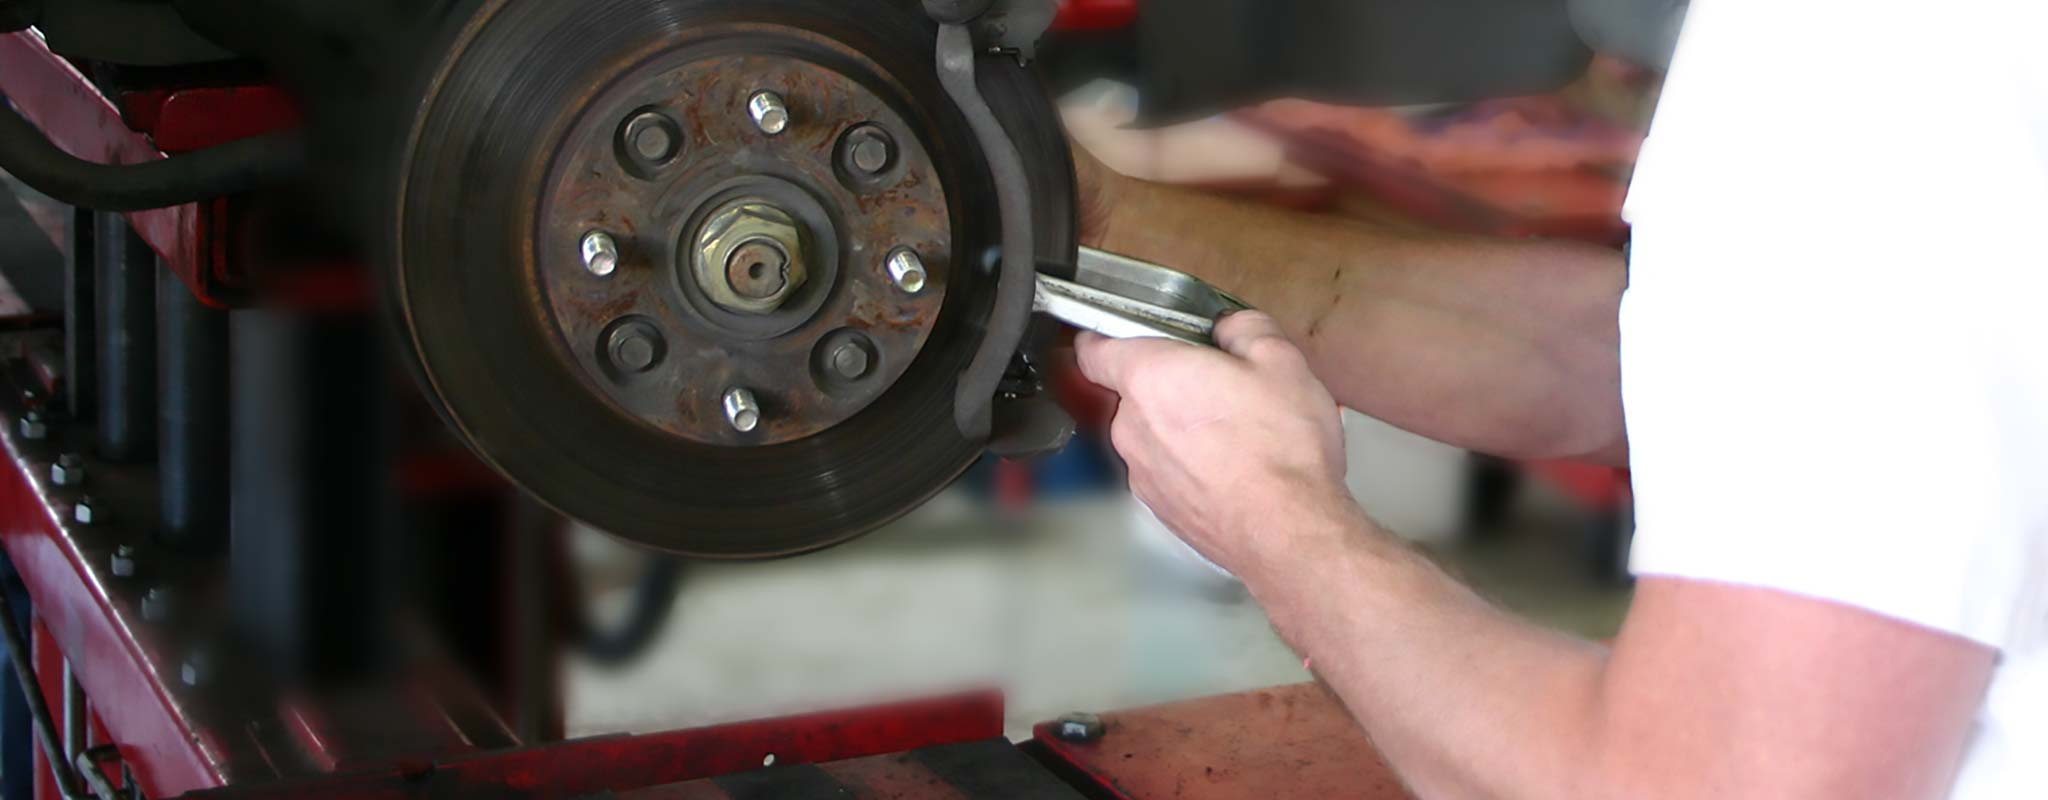 images/news/6753/6941/winter-safety-get-your-brakes-serviced-sommer-car-care.jpg